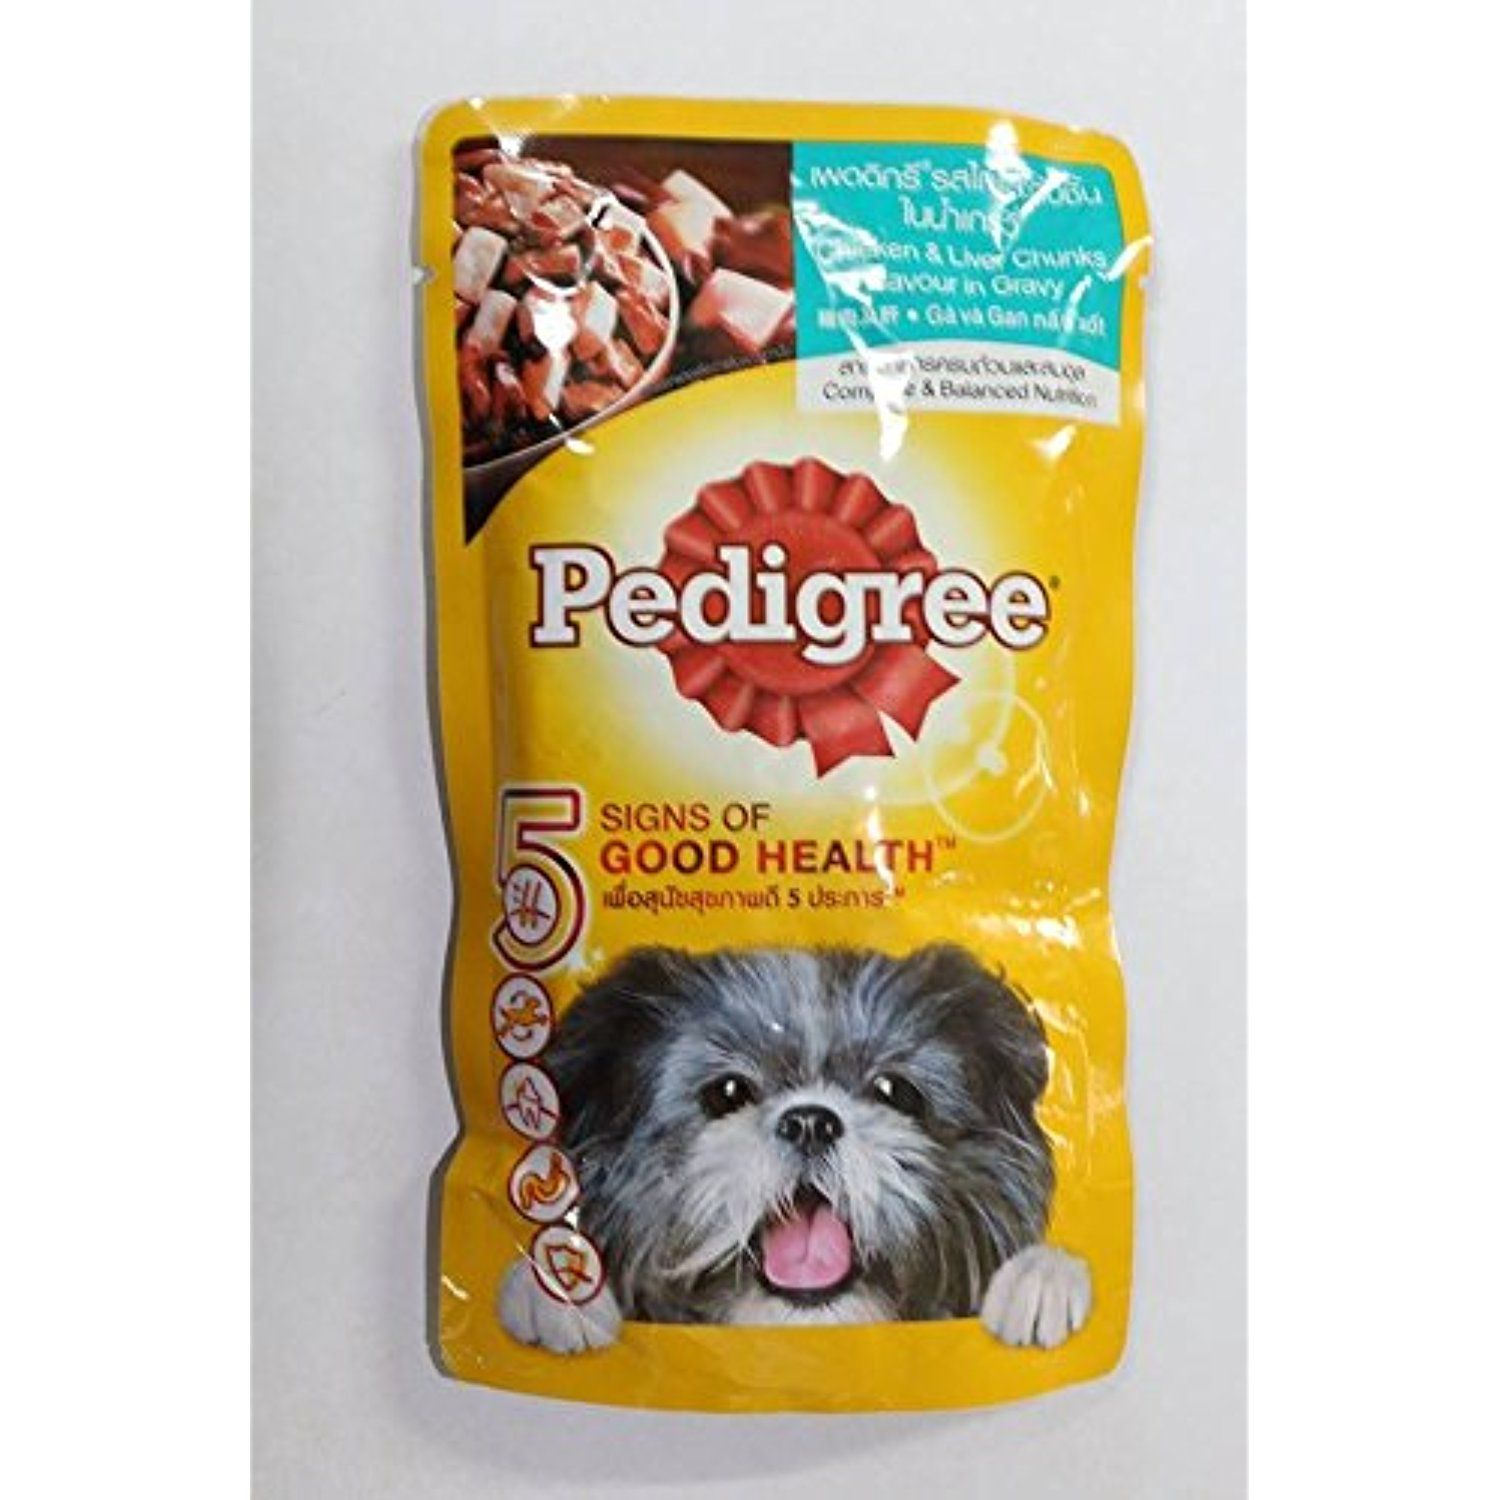 Pedigree Chicken Liver Chunks Flavour In Gravy Dog You Can